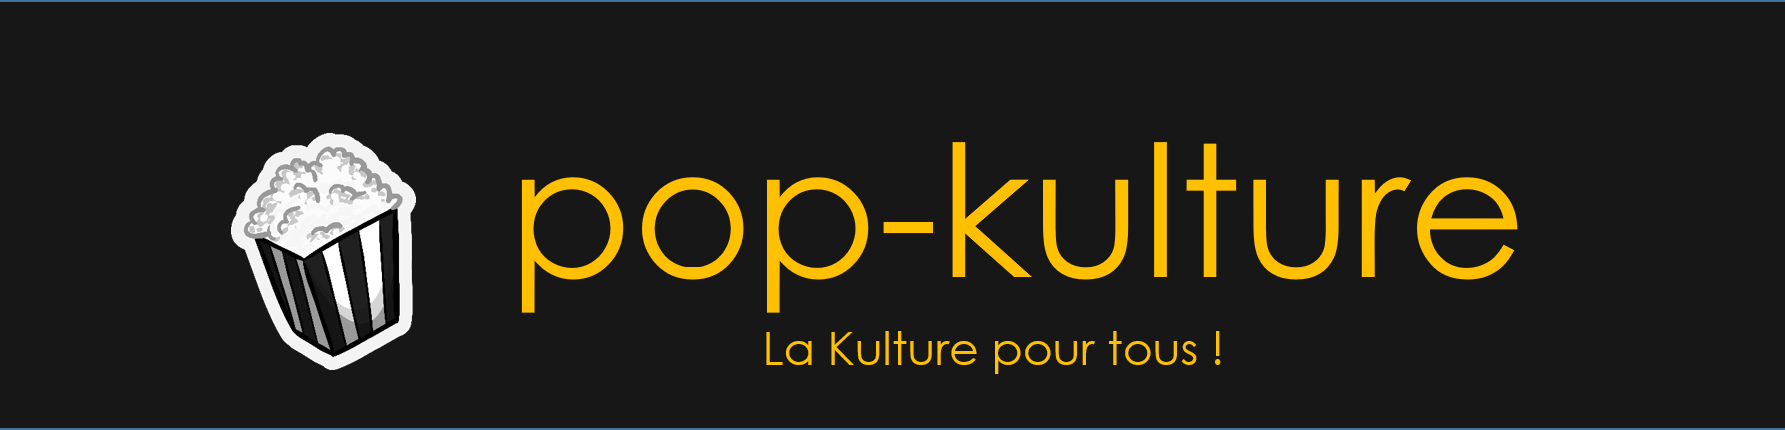 cropped-pop-kulture-logo-6.png